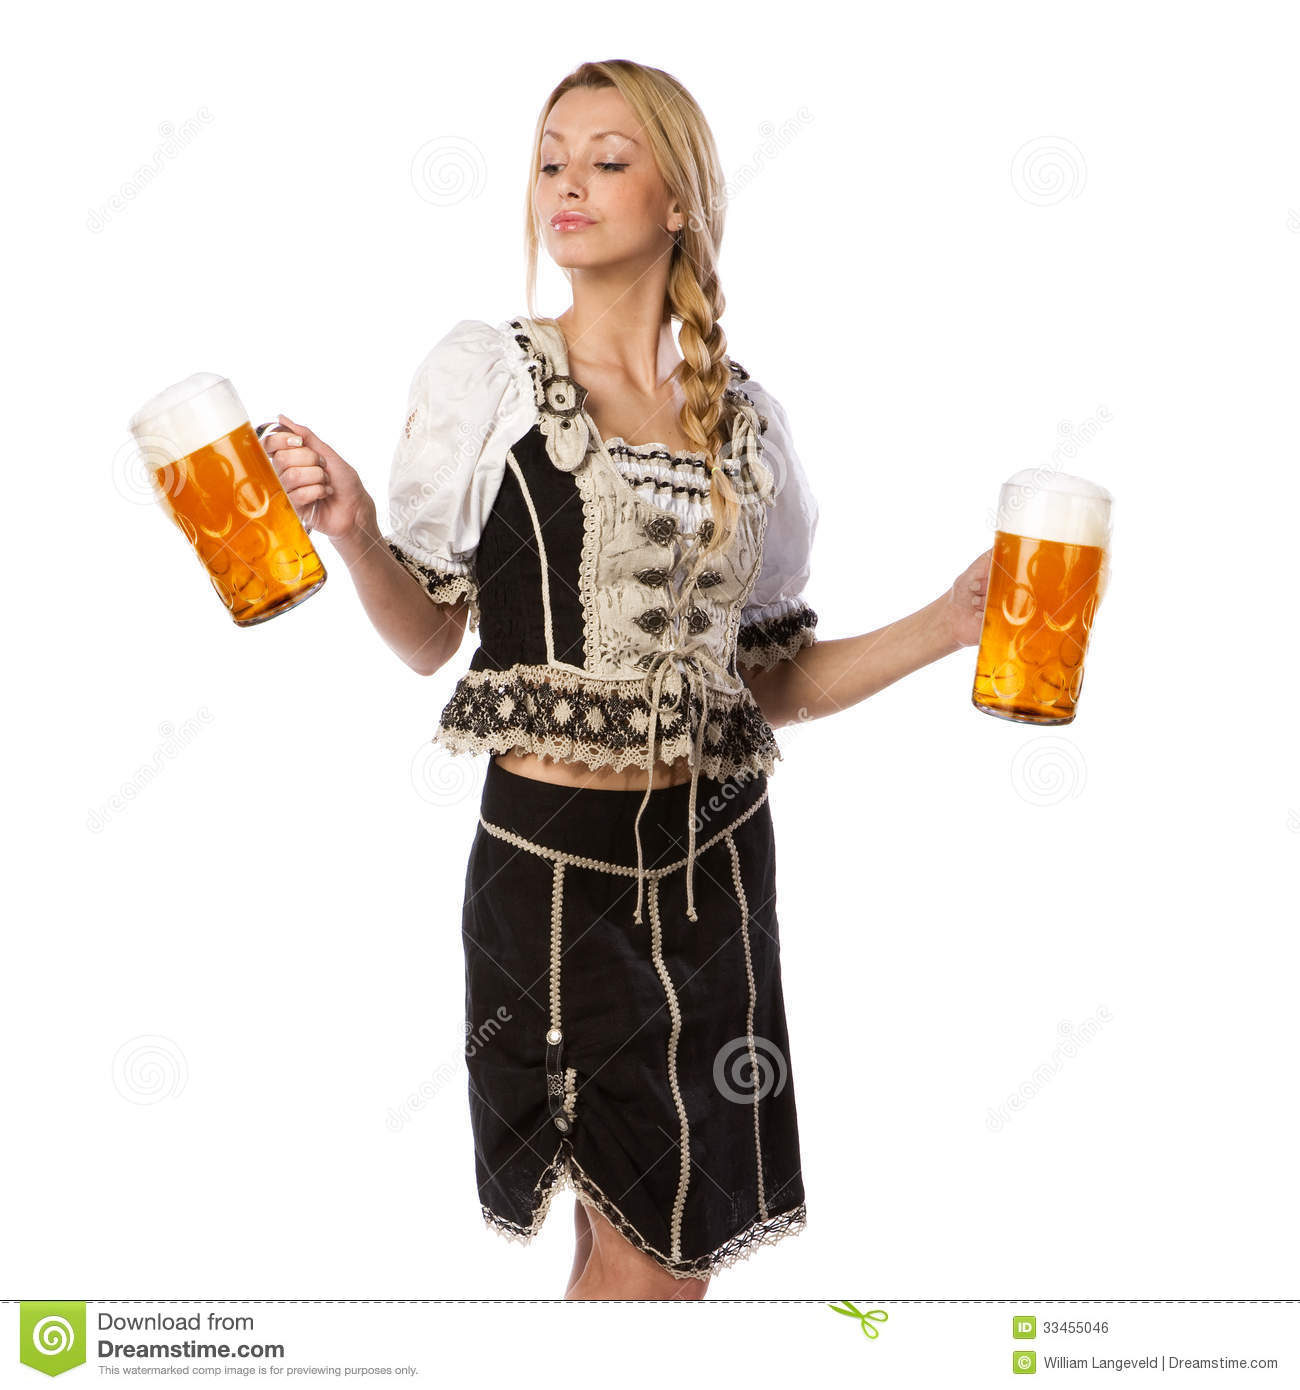 Beautiful Woman In Tiroler Outfit Stock Photo - Image of munchen, model: 33455046